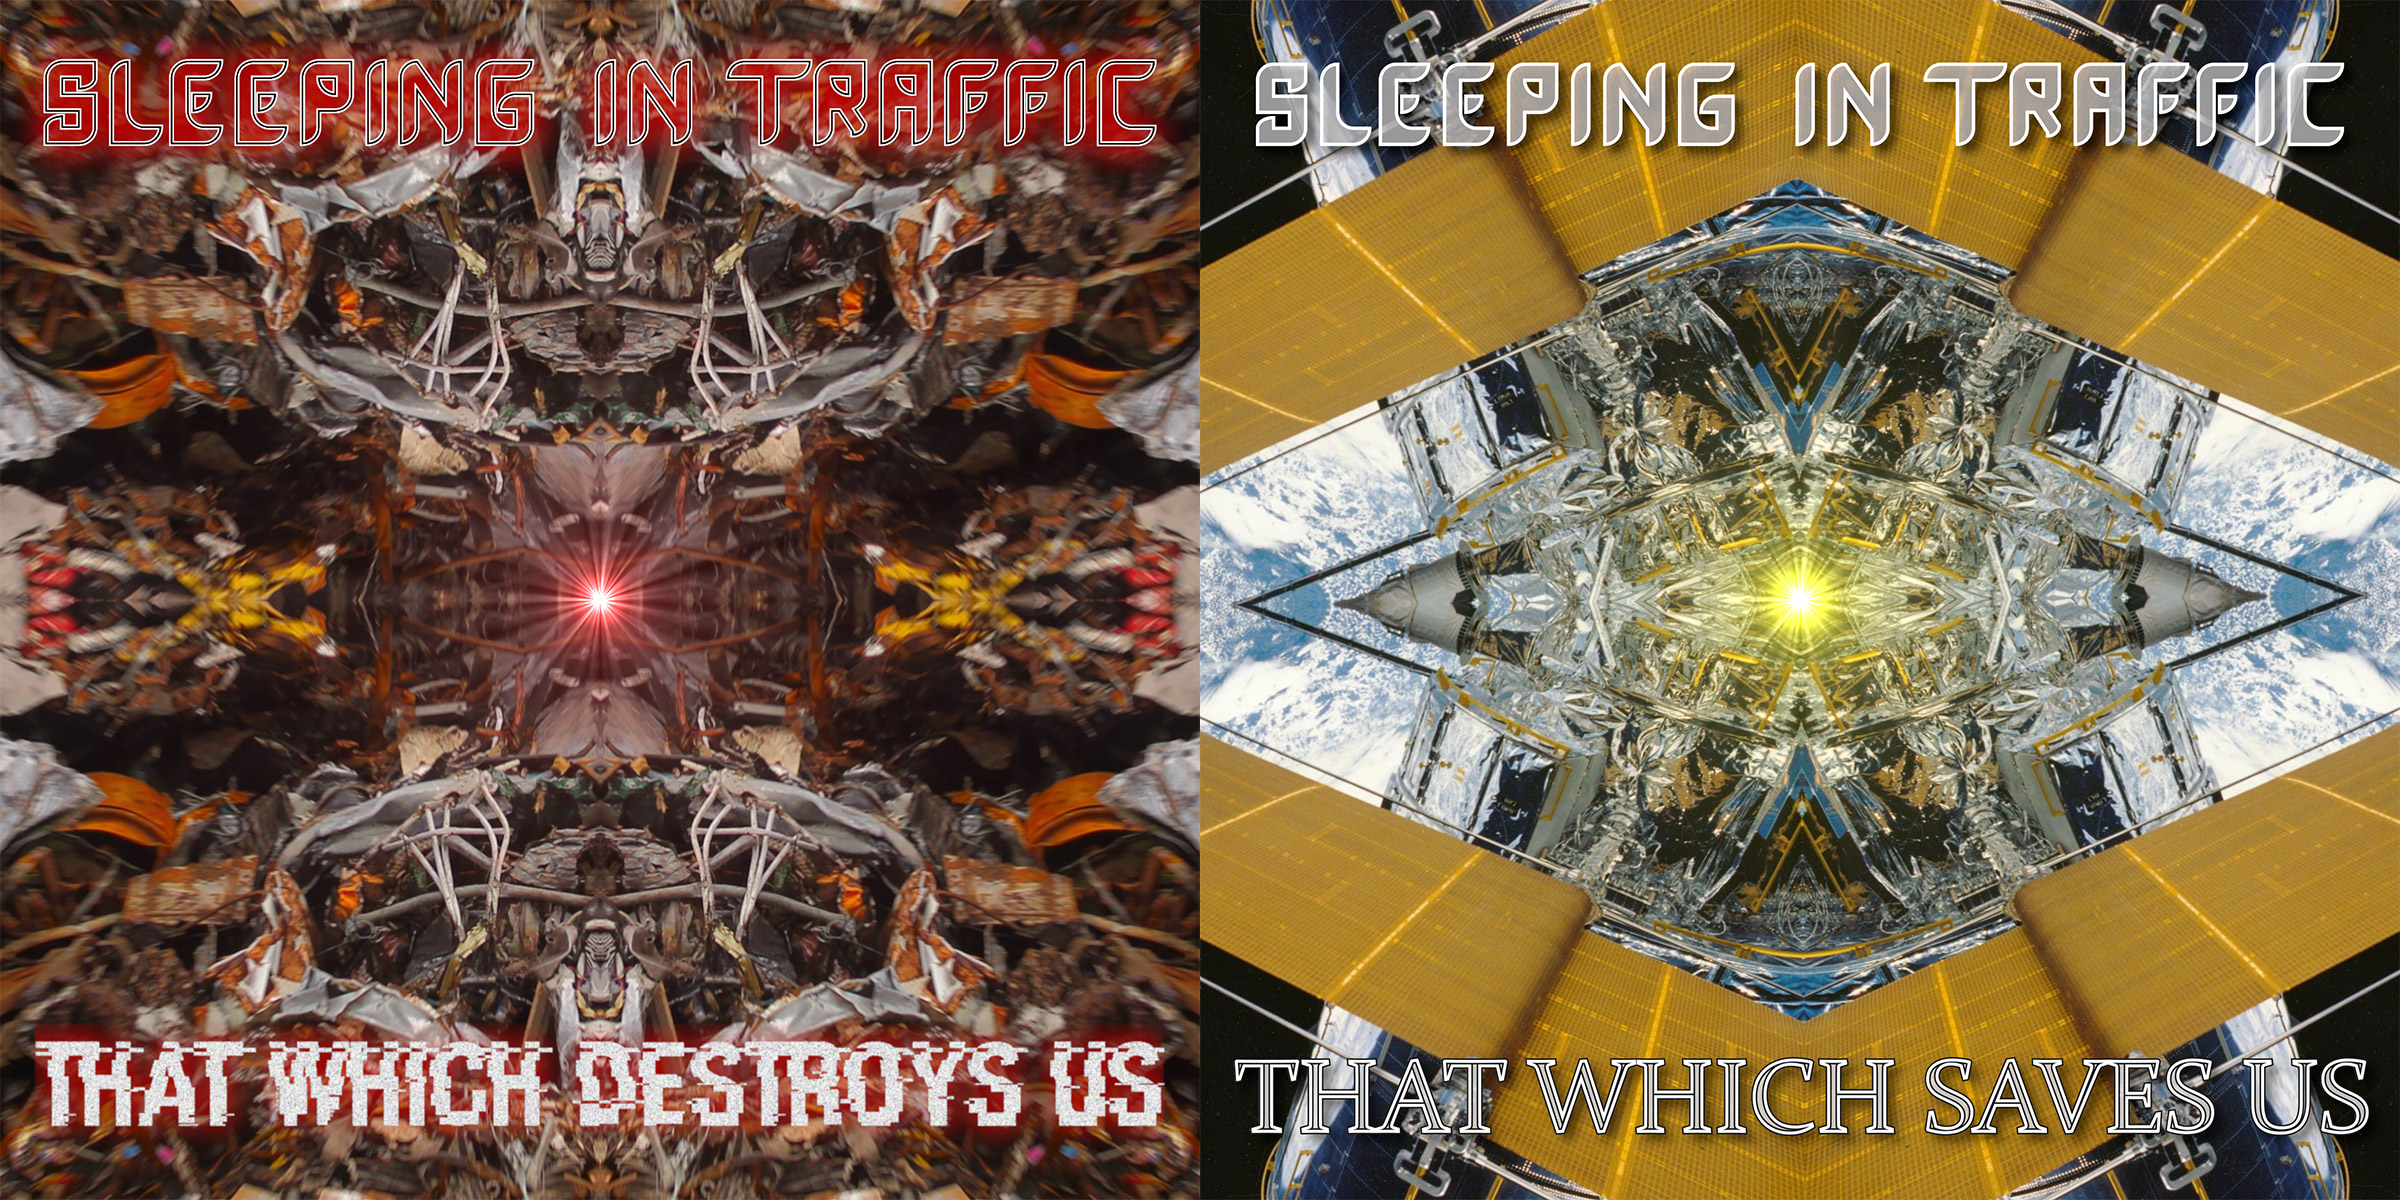 Sleeping in Traffic: That Which Destroys Us / That Which Saves Us